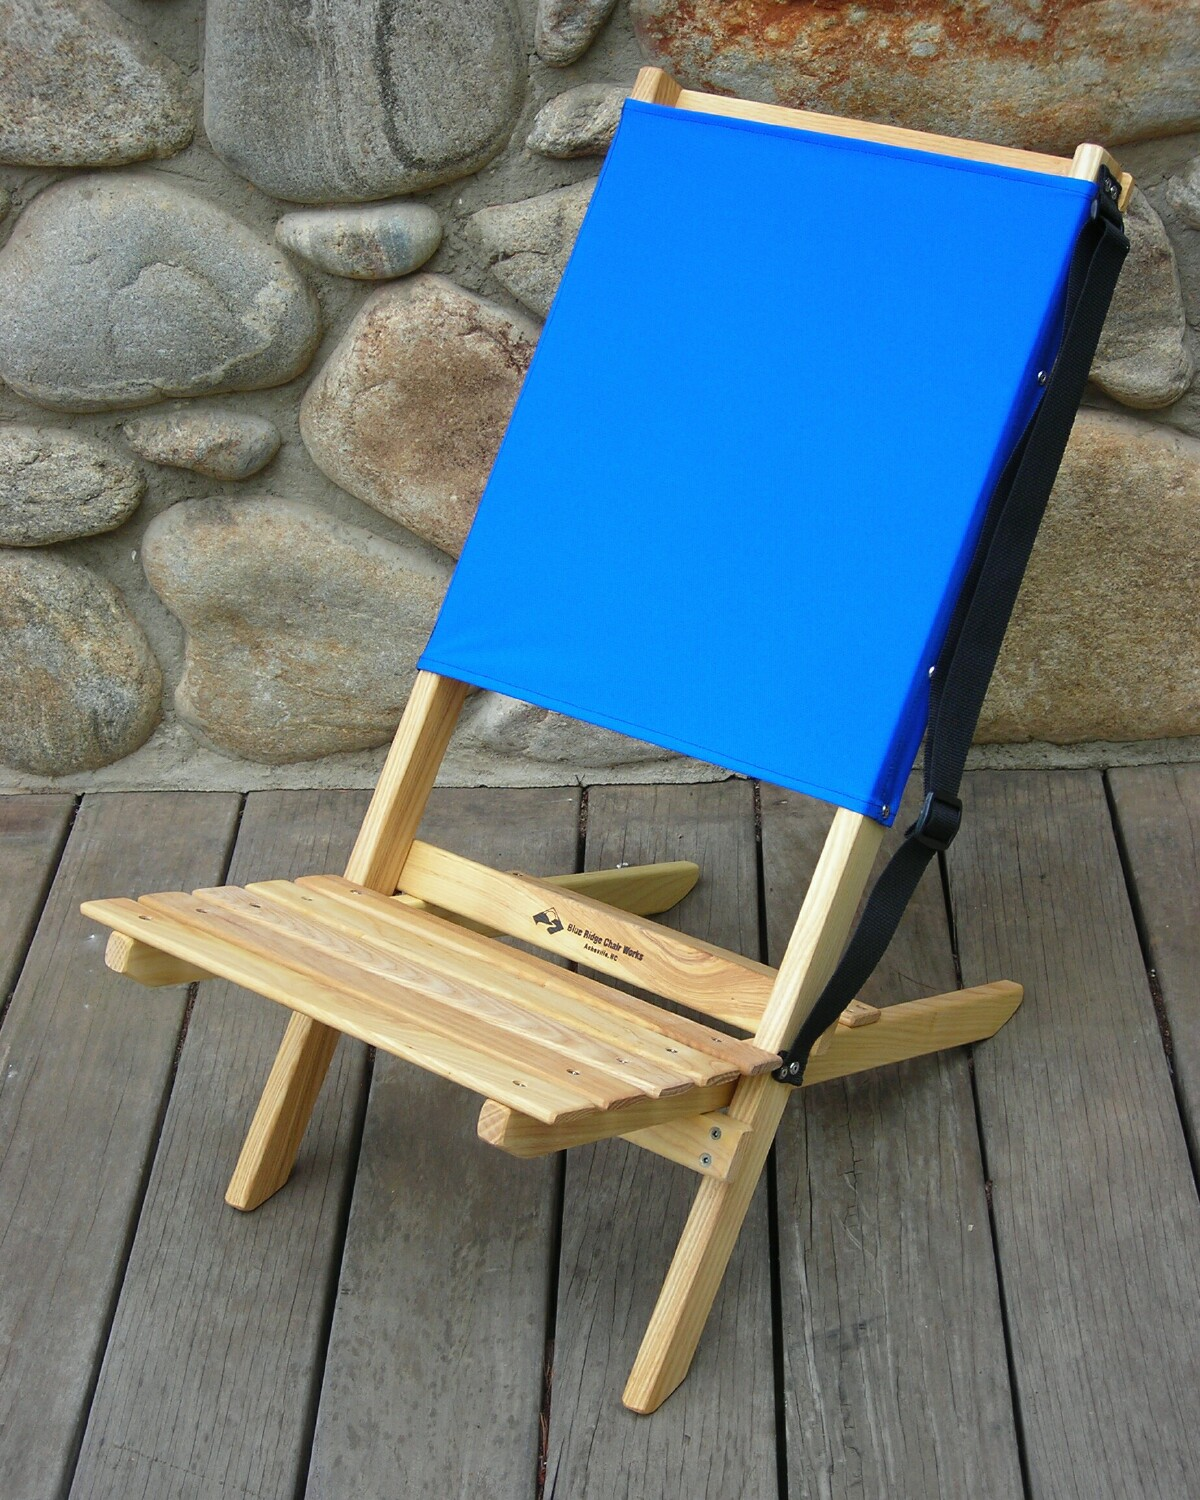 Folding Wood Beach Chair Outdoor Folding And Travel Chairs For Camping Picnics And